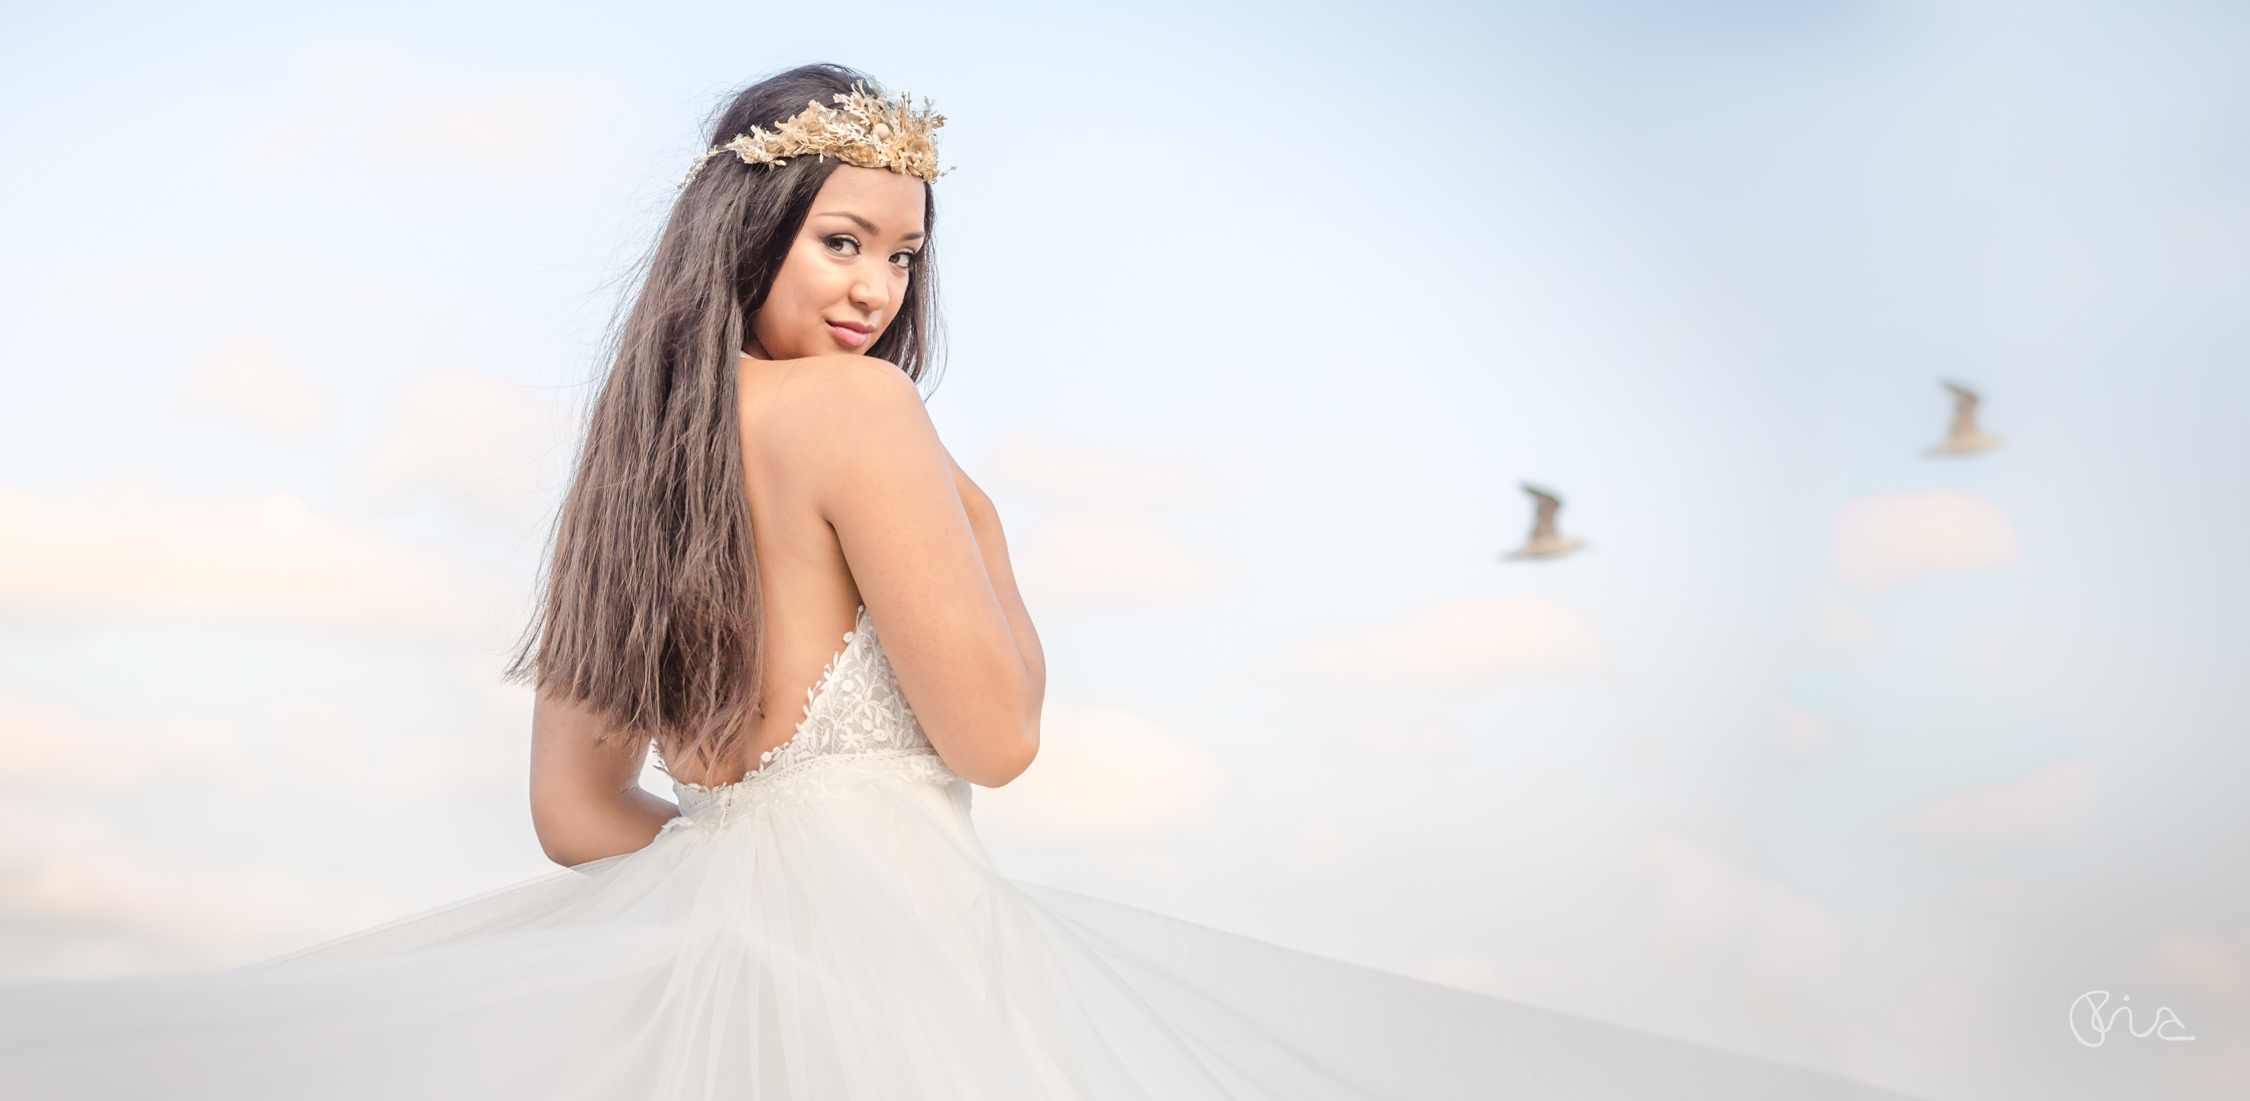 Bridal styled photoshoot in Eastbourne